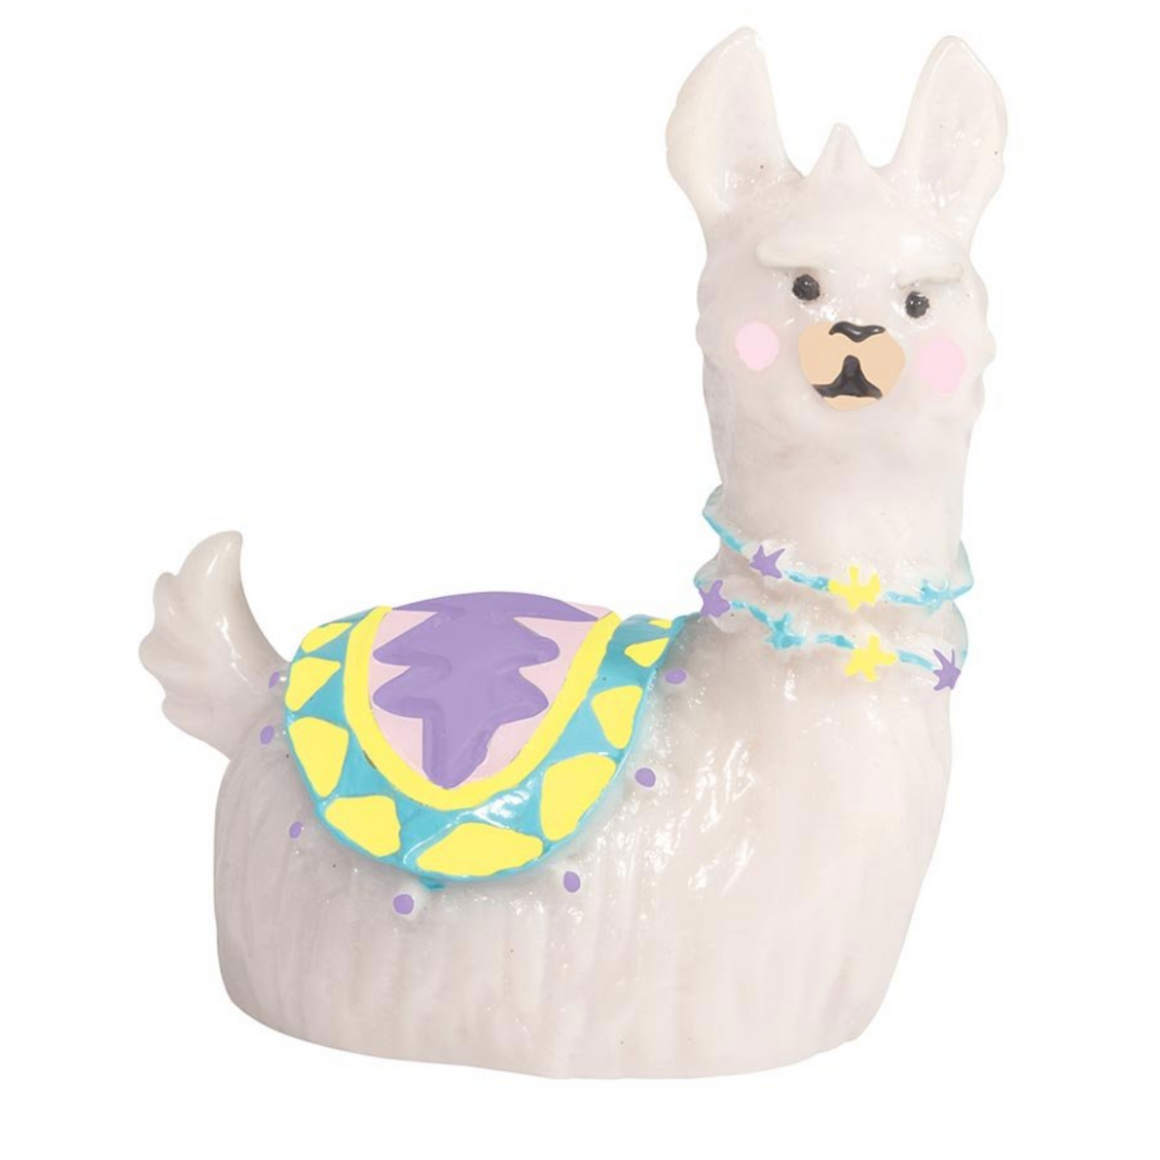 Image featuring a llama lip gloss in the centre which has a purple saddle on its back